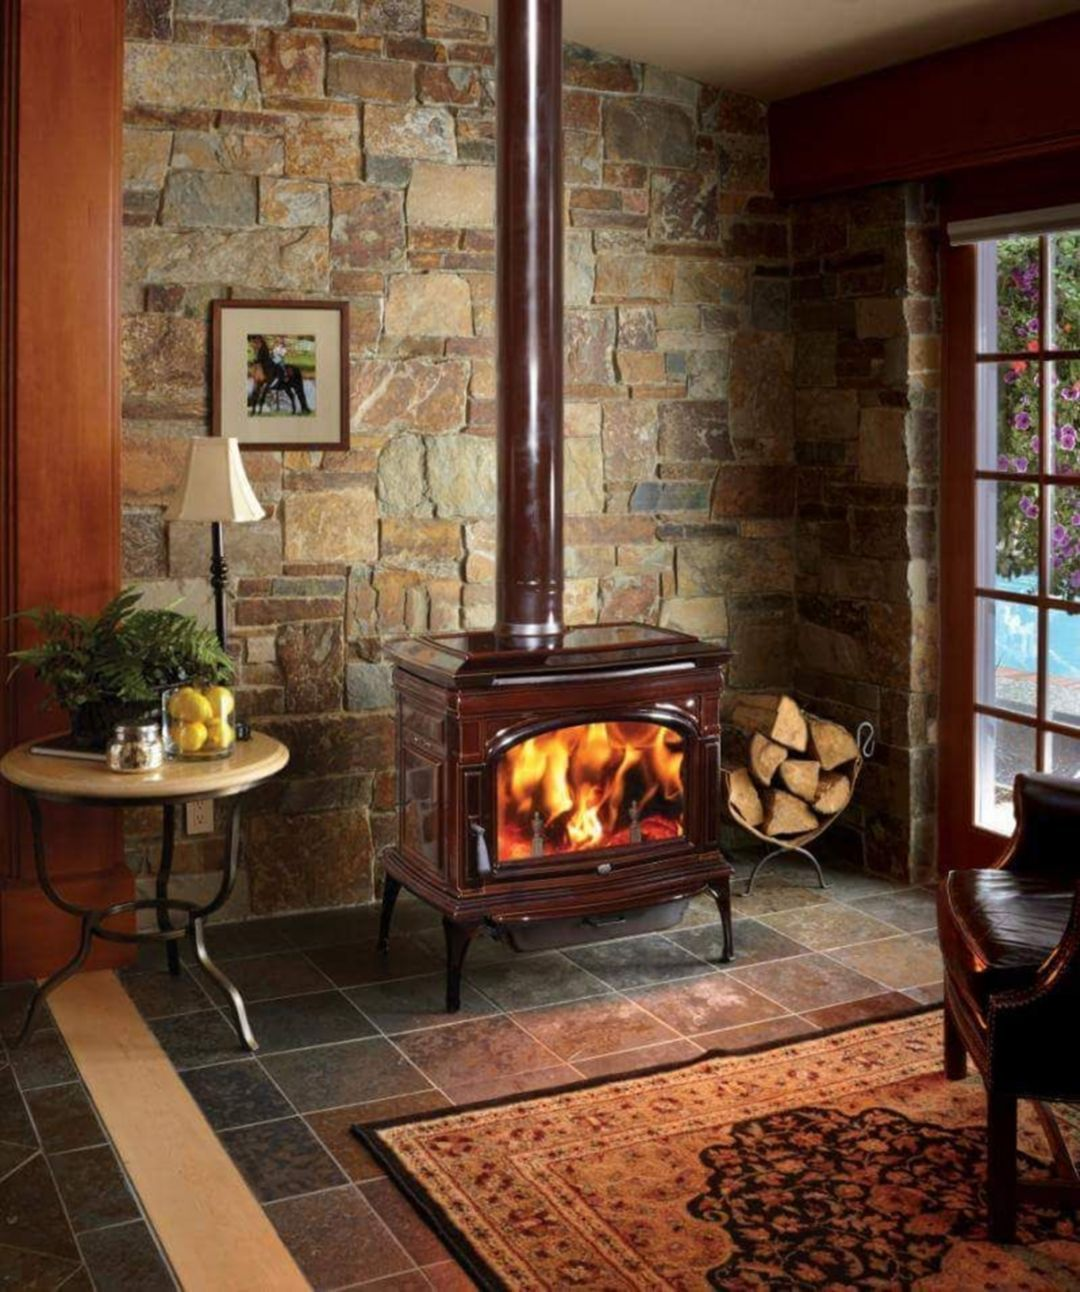 30 Best Wood Stove Decor Ideas For Your Living Room Wood Stove Wall Wood Stove Decor Stove Decor